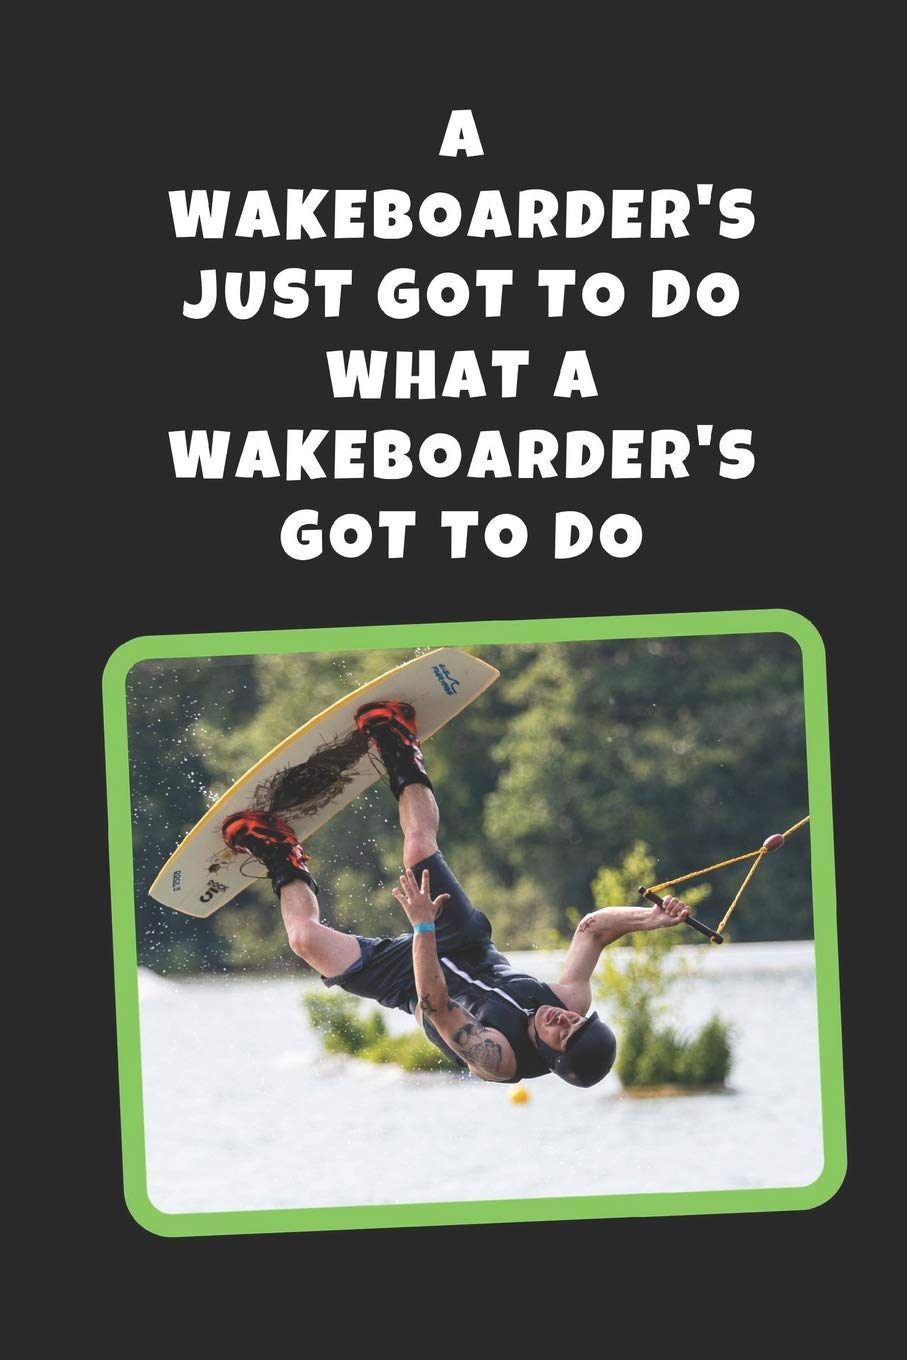 Wakeboarders Just Got What Wakeboarding